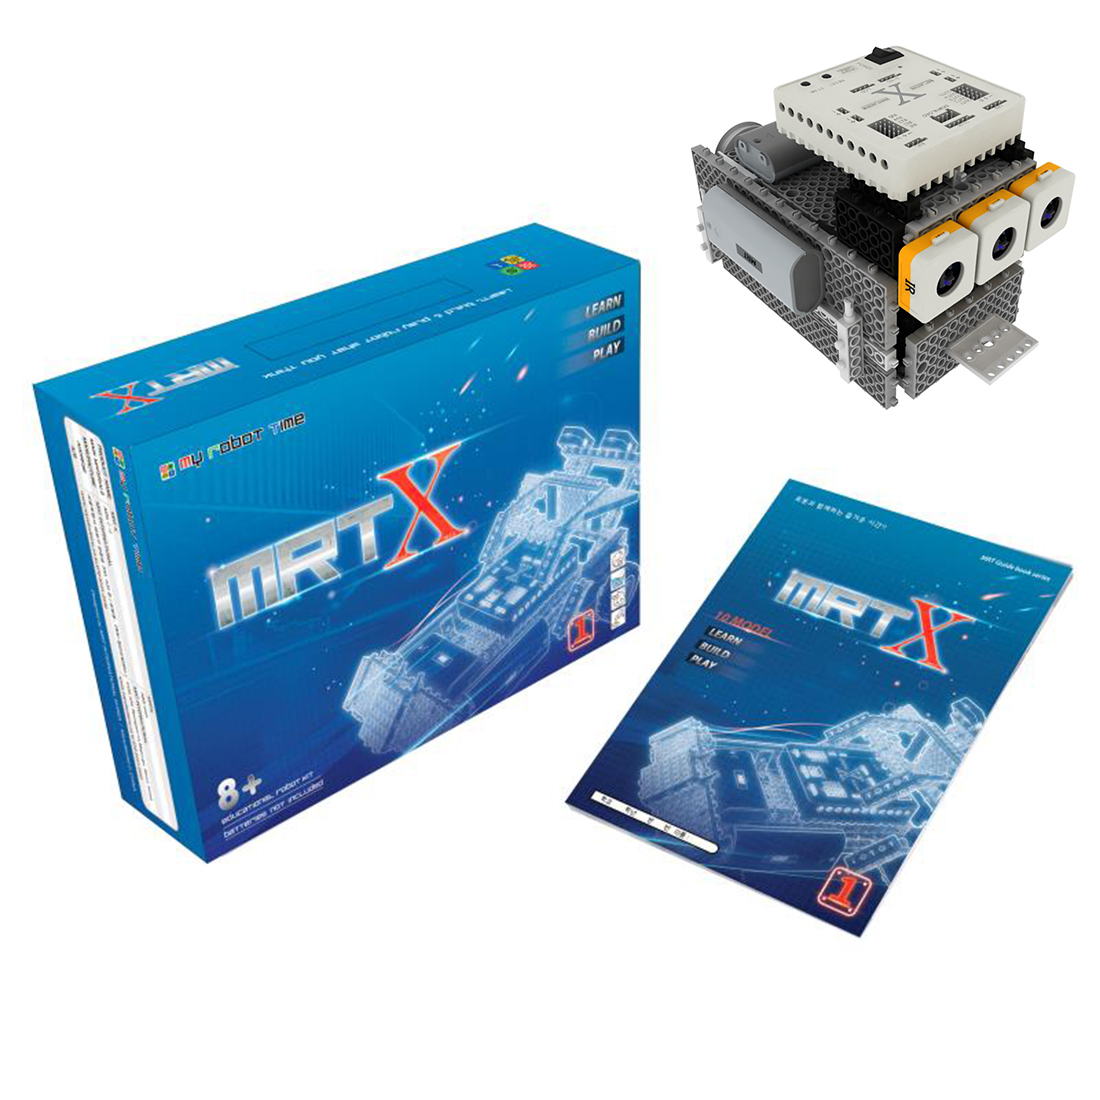 My Robot Time MRT X-1 Robots Building Block Kit Assembly Programmable Educational Robot Toy Gift for 12-15 Years Old 1